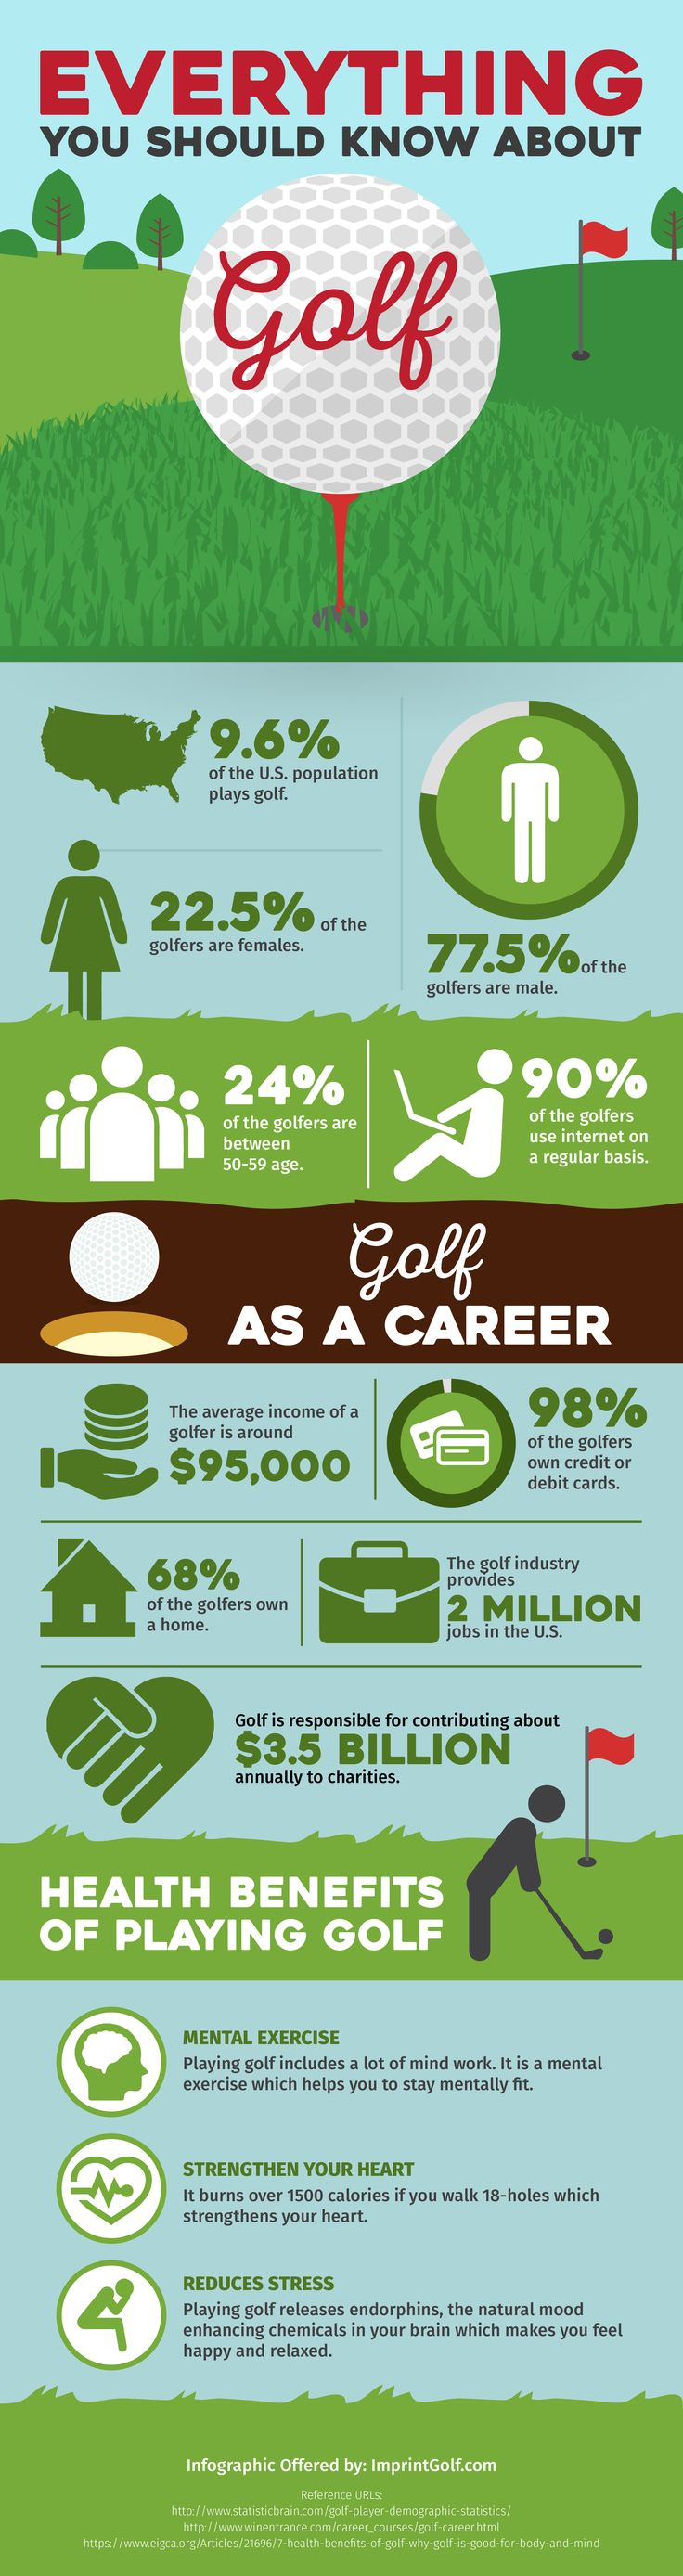 Here are some amazing facts you should know about golf. Get to know more about golf and buy golf kits on http://www.imprintgolf.com/.